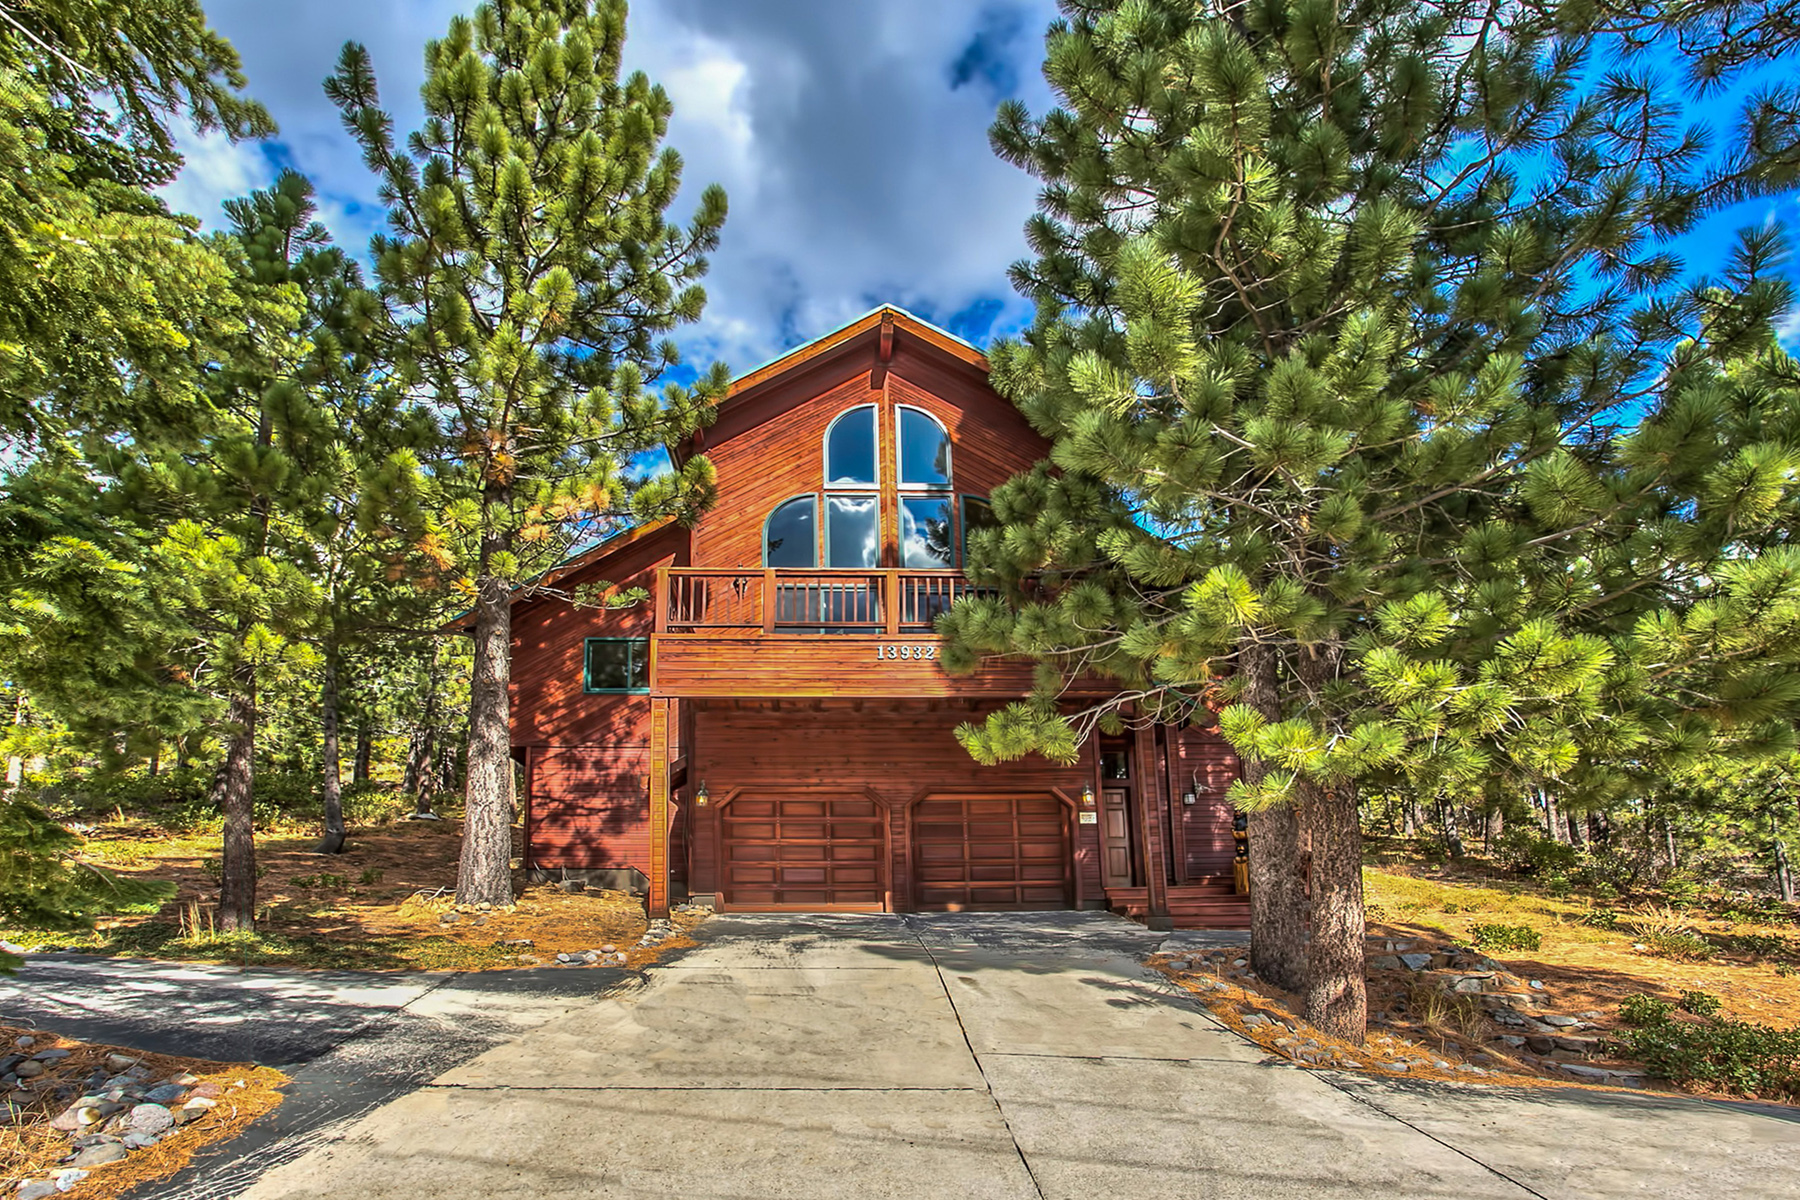 Single Family Home for Active at 13932 Alder Creek Road Truckee, California 96161 United States